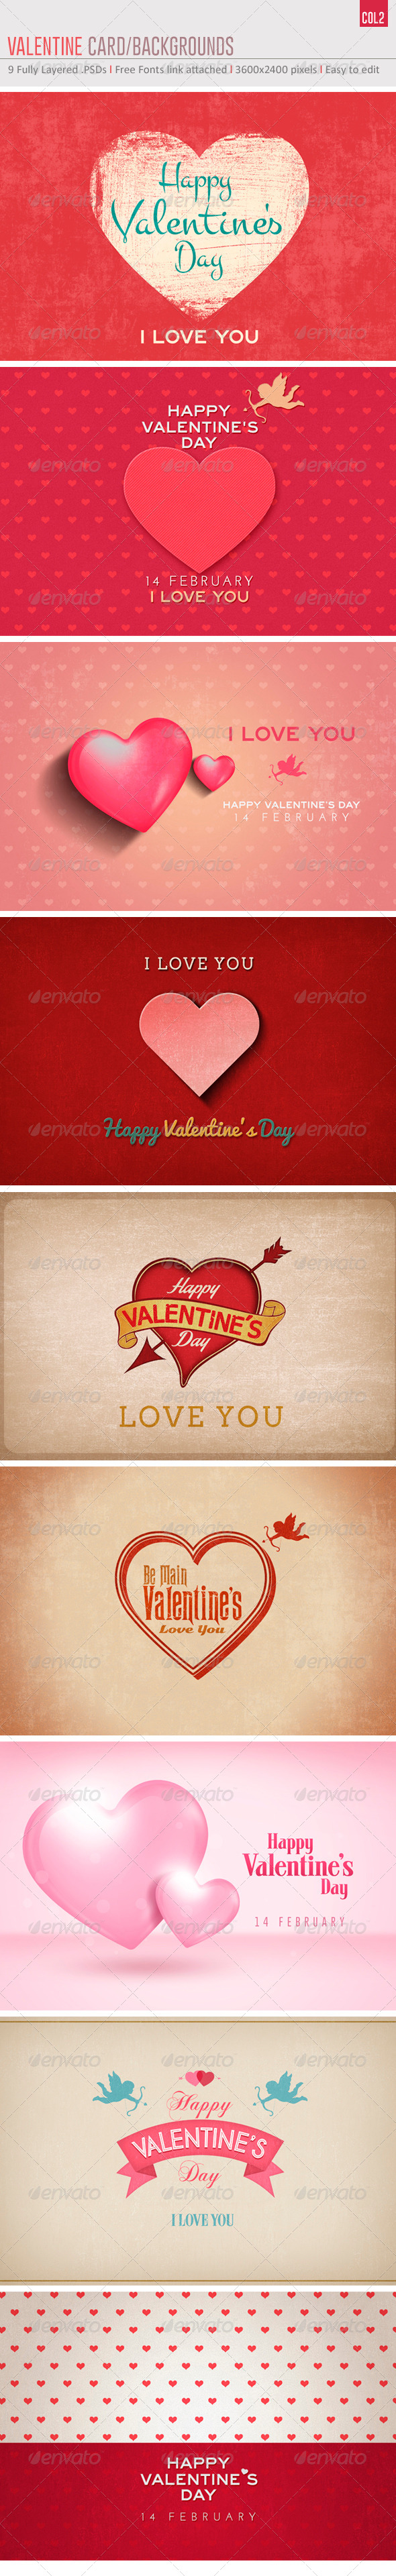 GraphicRiver Valentine s Card Backgrounds Col2 6537369